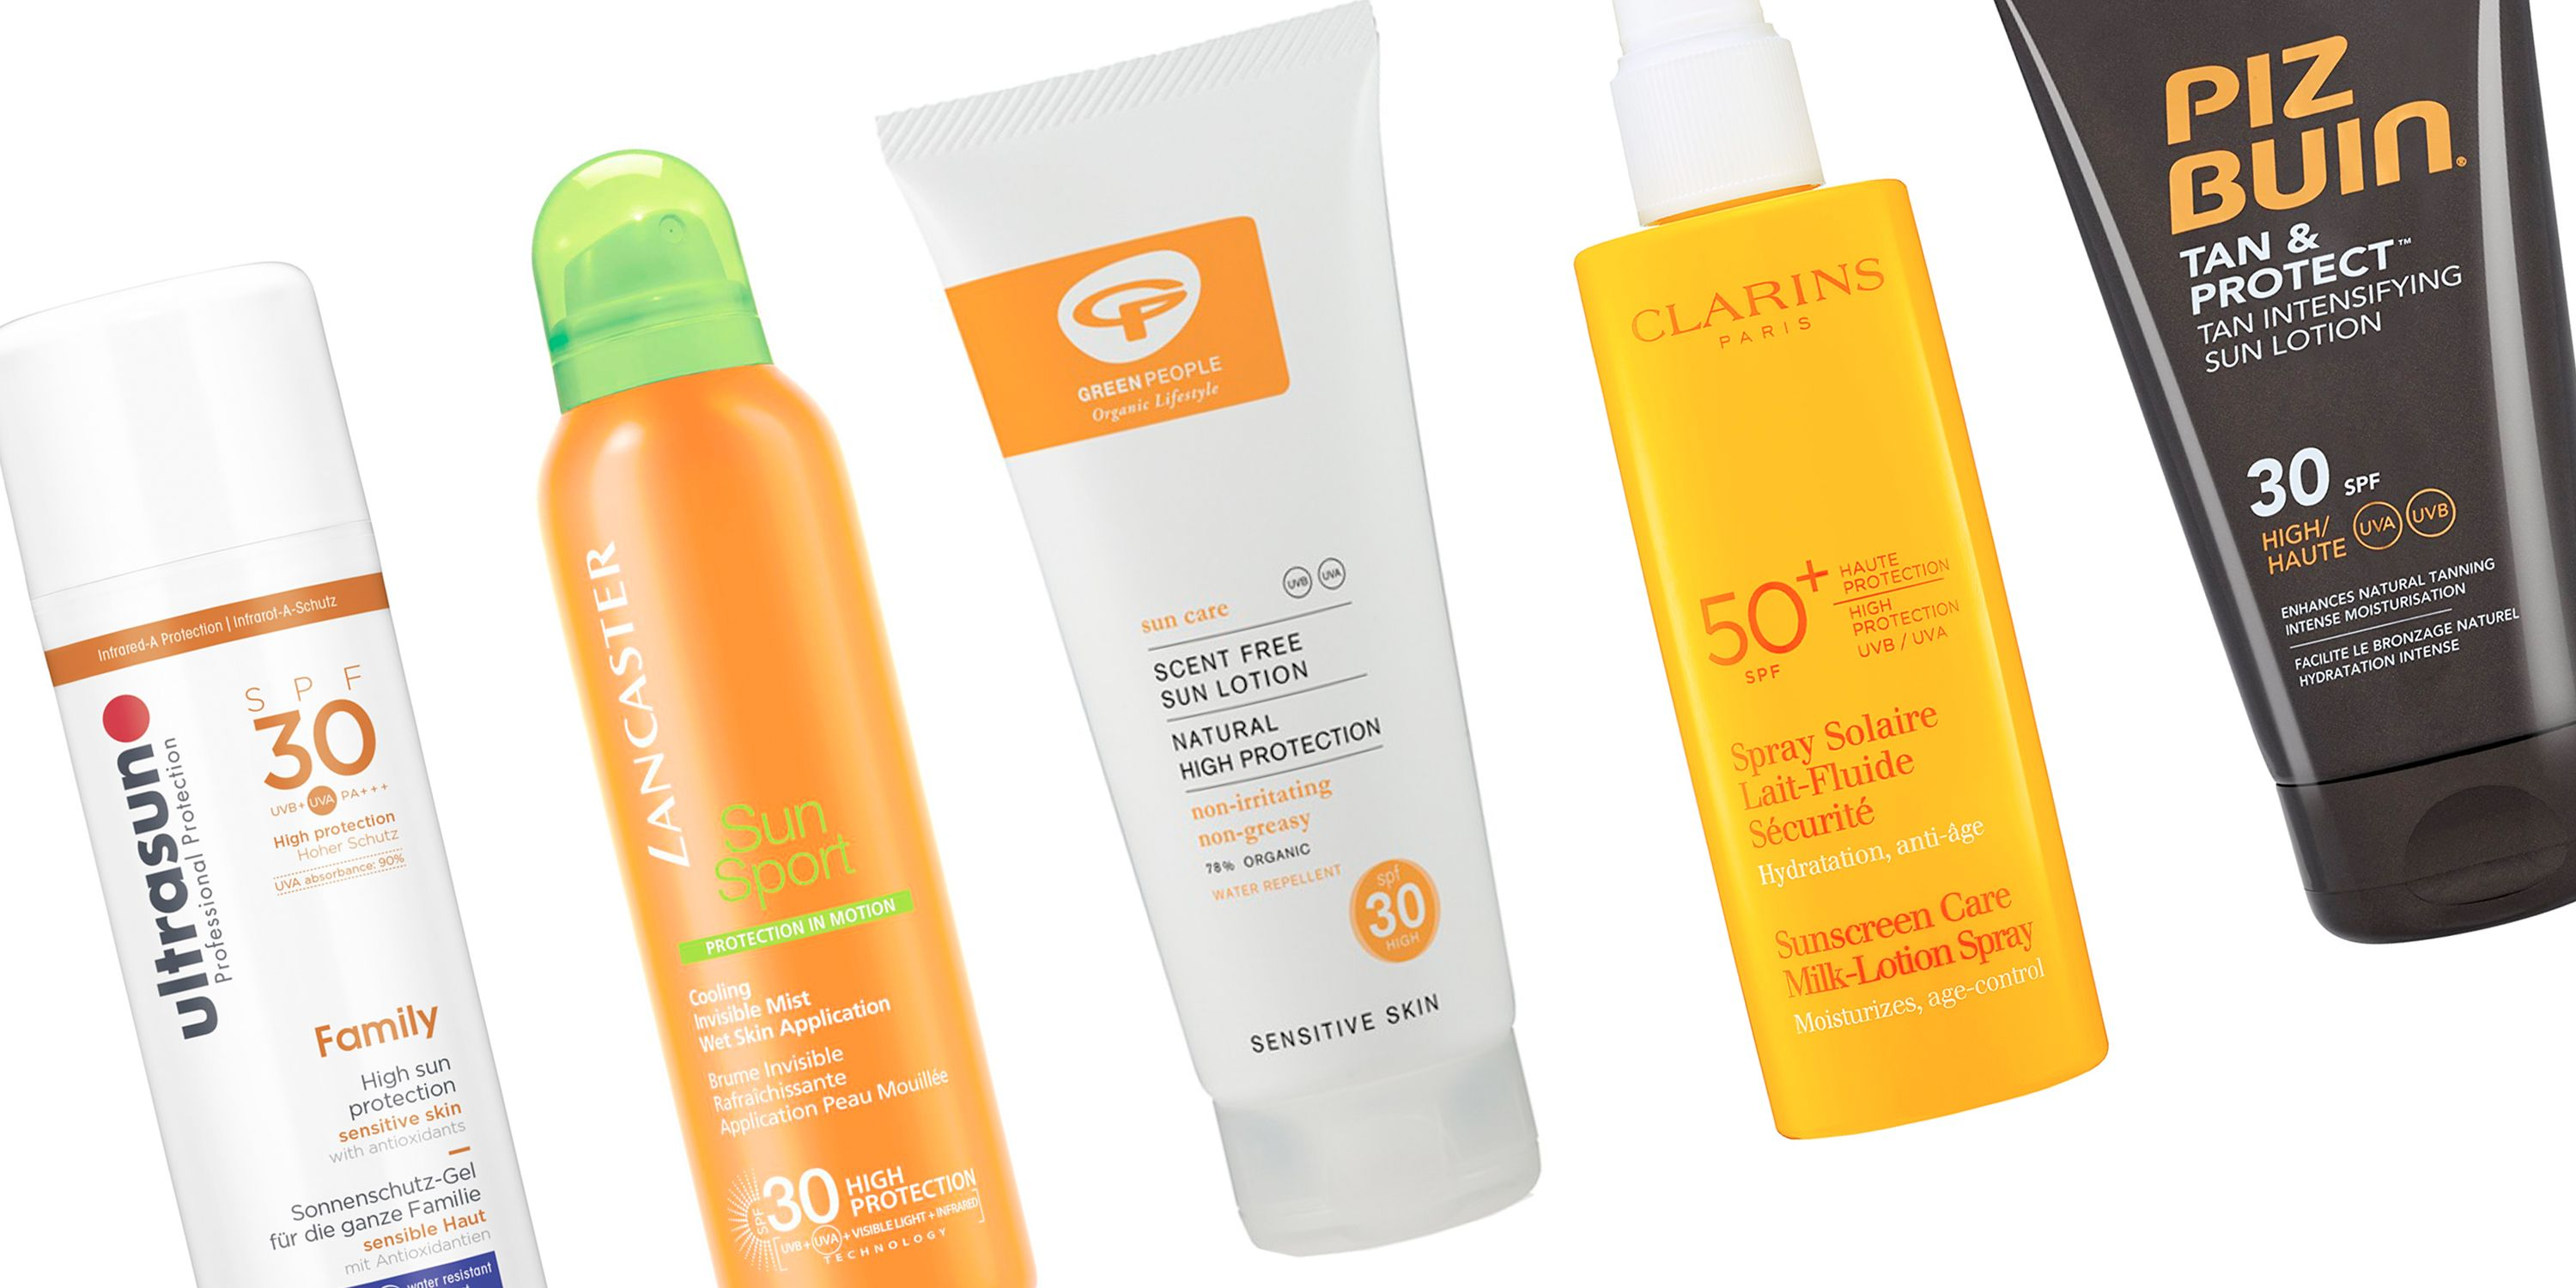 Watch Check out our other sun protection buying guides video